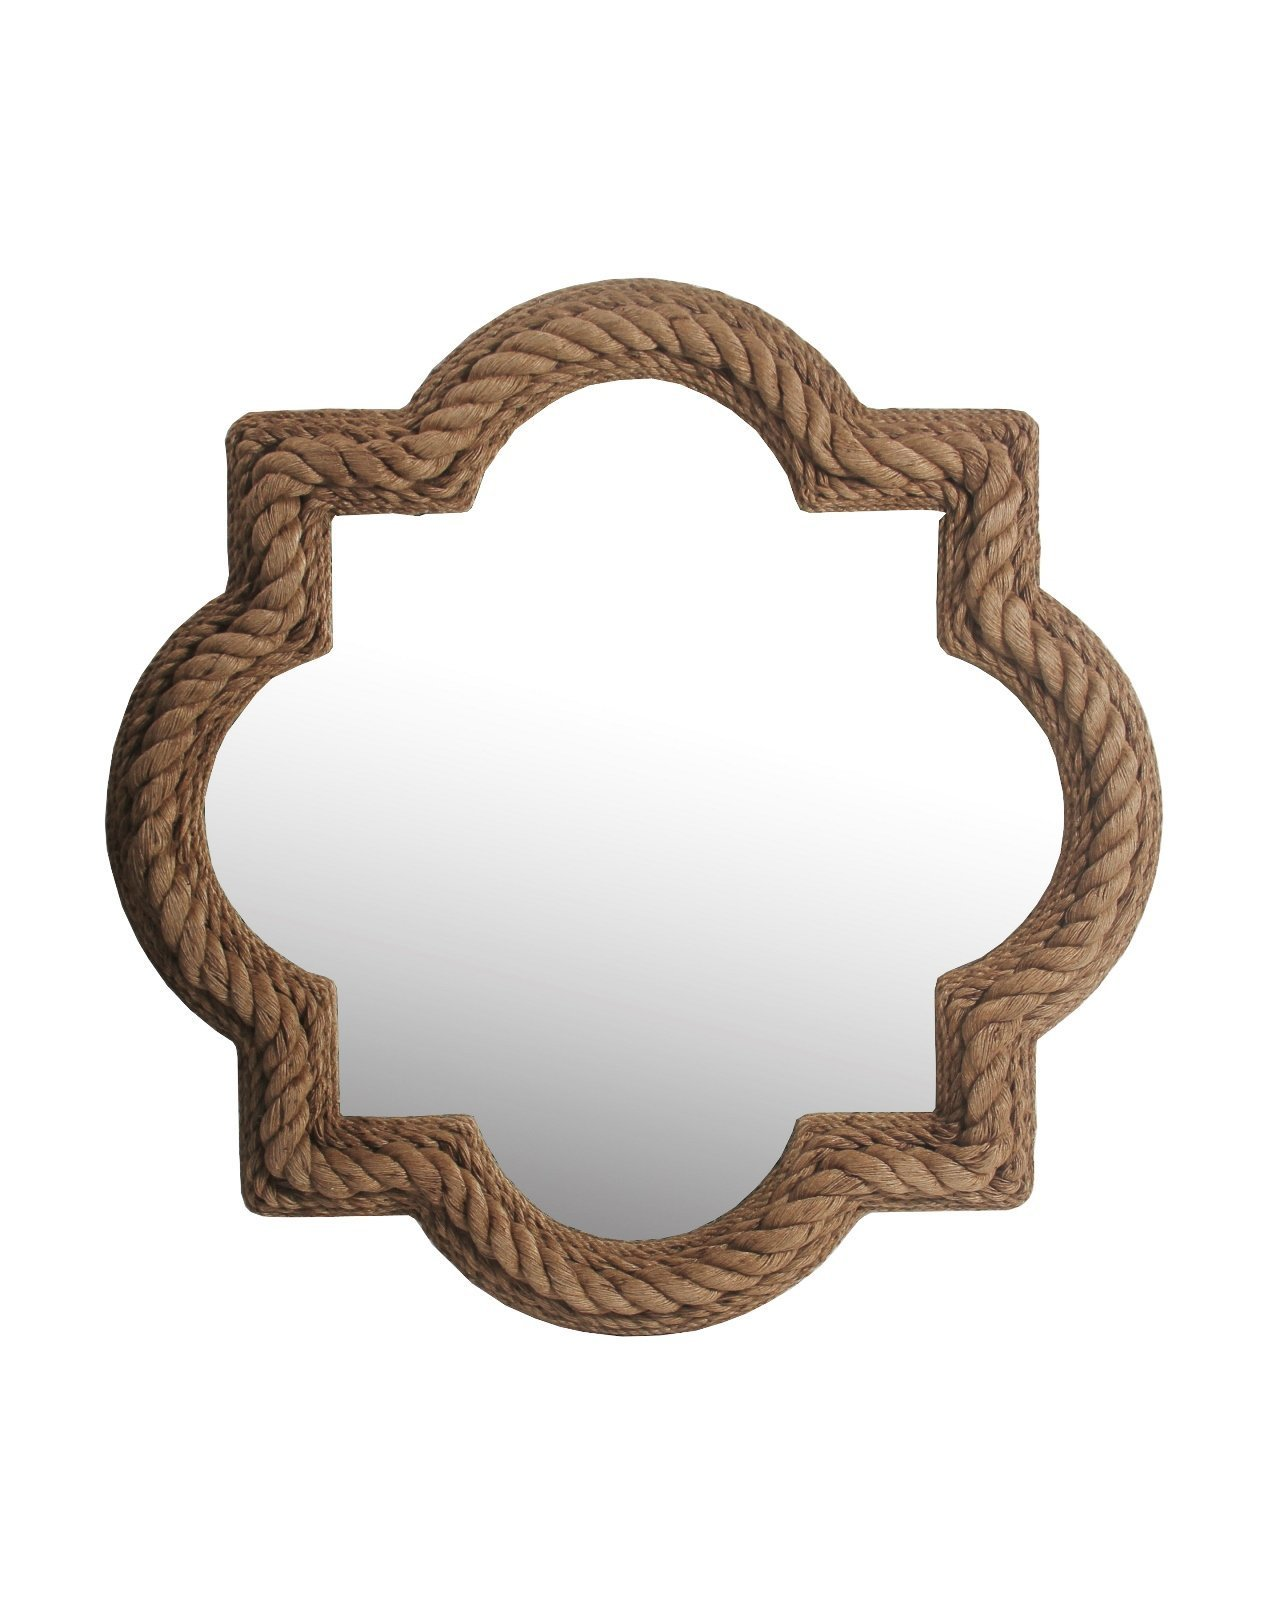 Privilege Rope Beveled Mirror - Material: Wood No assembly required Country of Origin: China - bathroom-mirrors, bathroom-accessories, bathroom - 71 Rmzi7jLL -